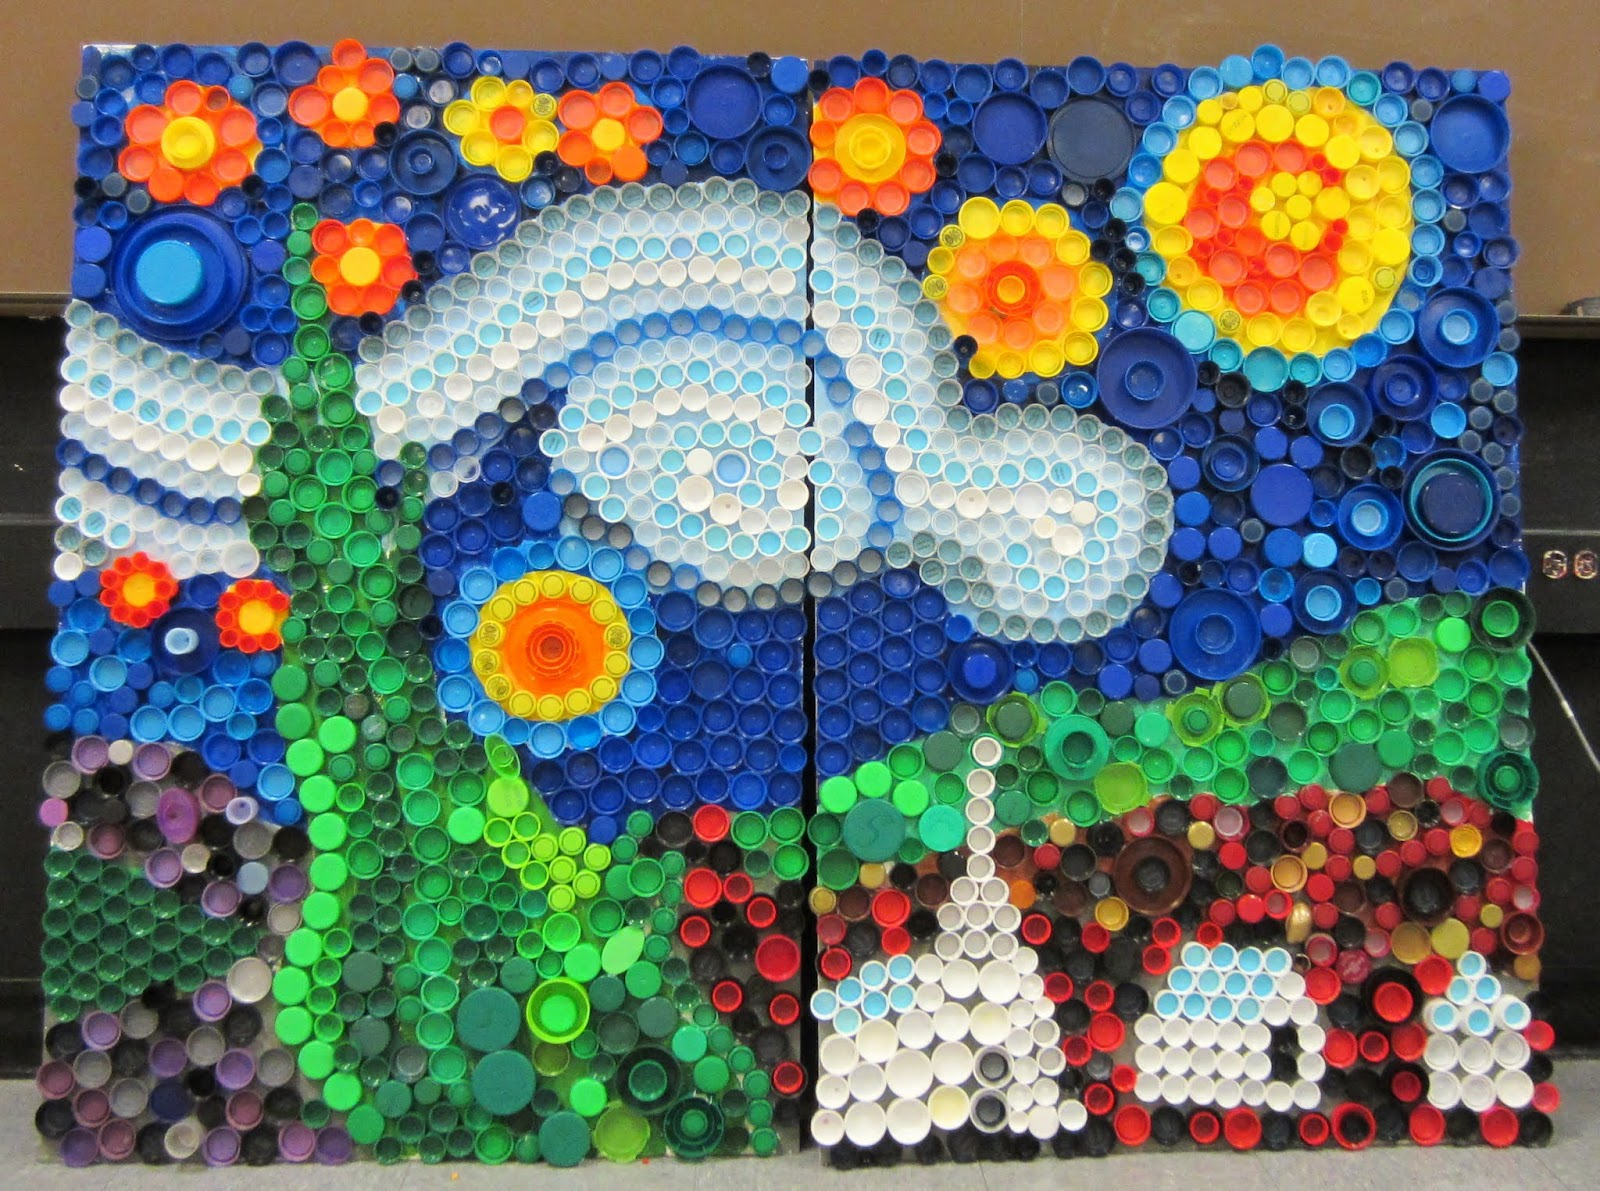 Mrs art teacher every cap counts our bottle cap mural for Creating a mural